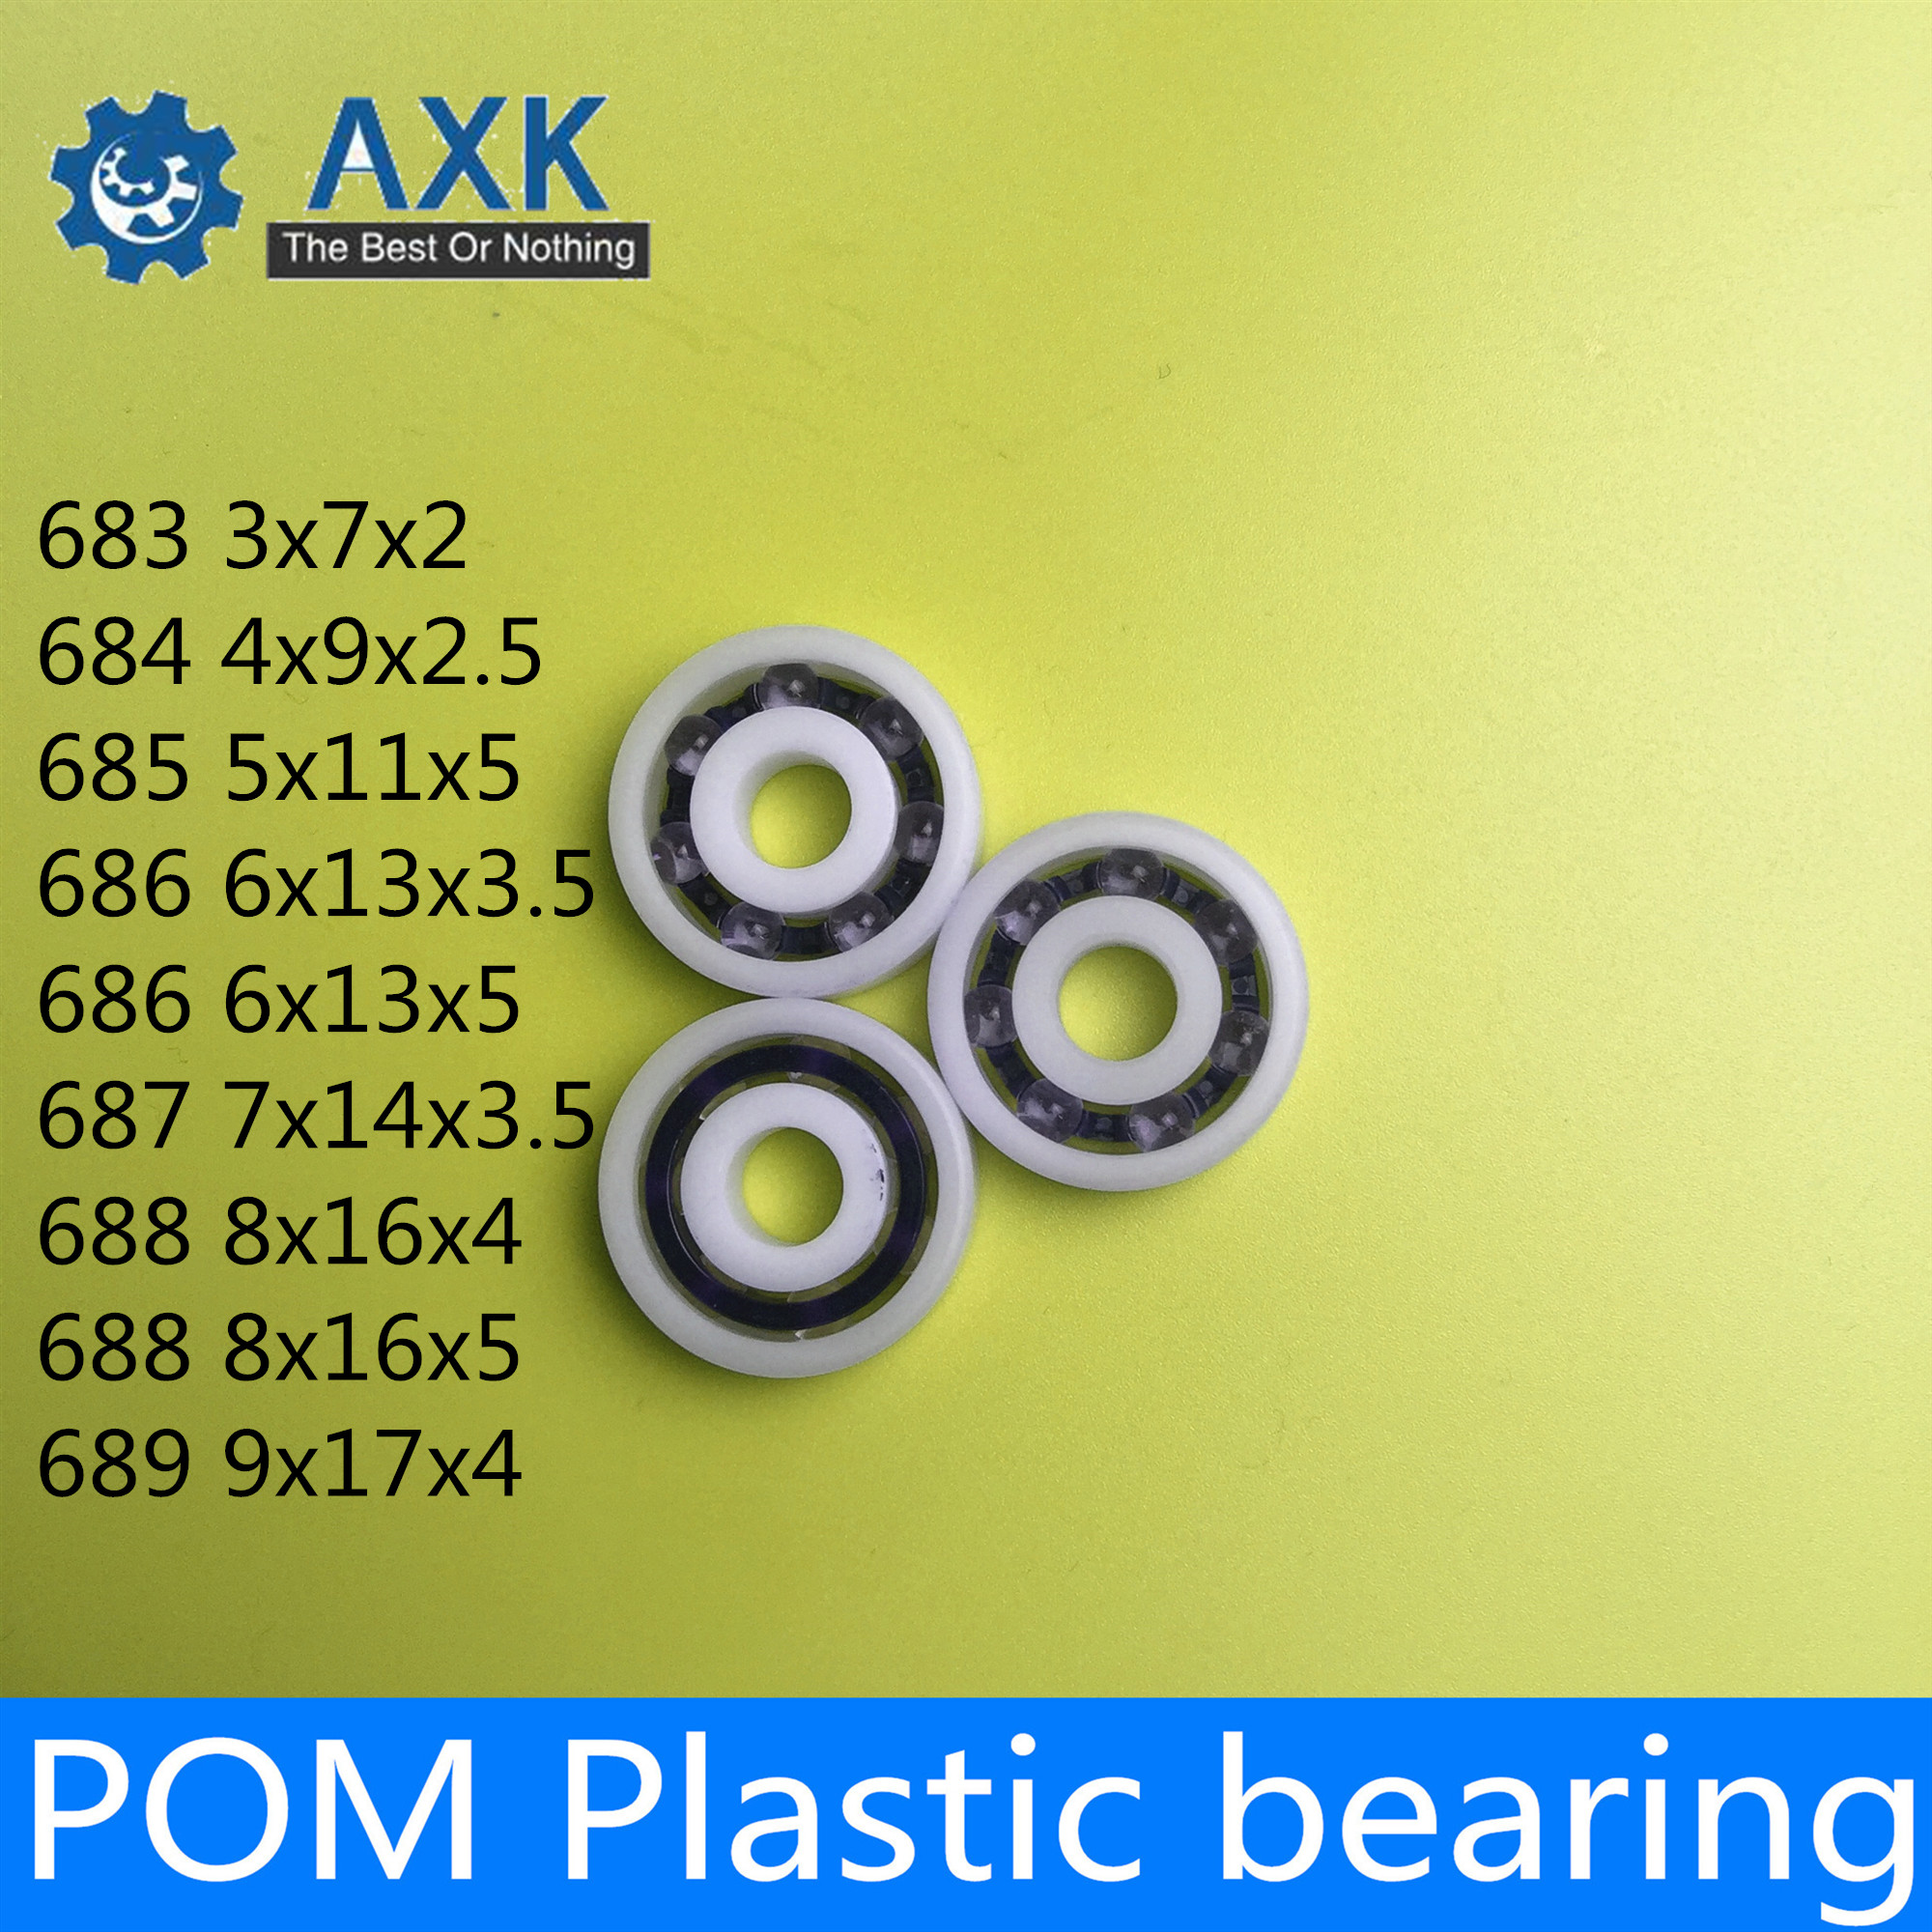 4 pcs 688 8*16*4 Plastic Nylon POM Ball Bearings 8x16x4 mm